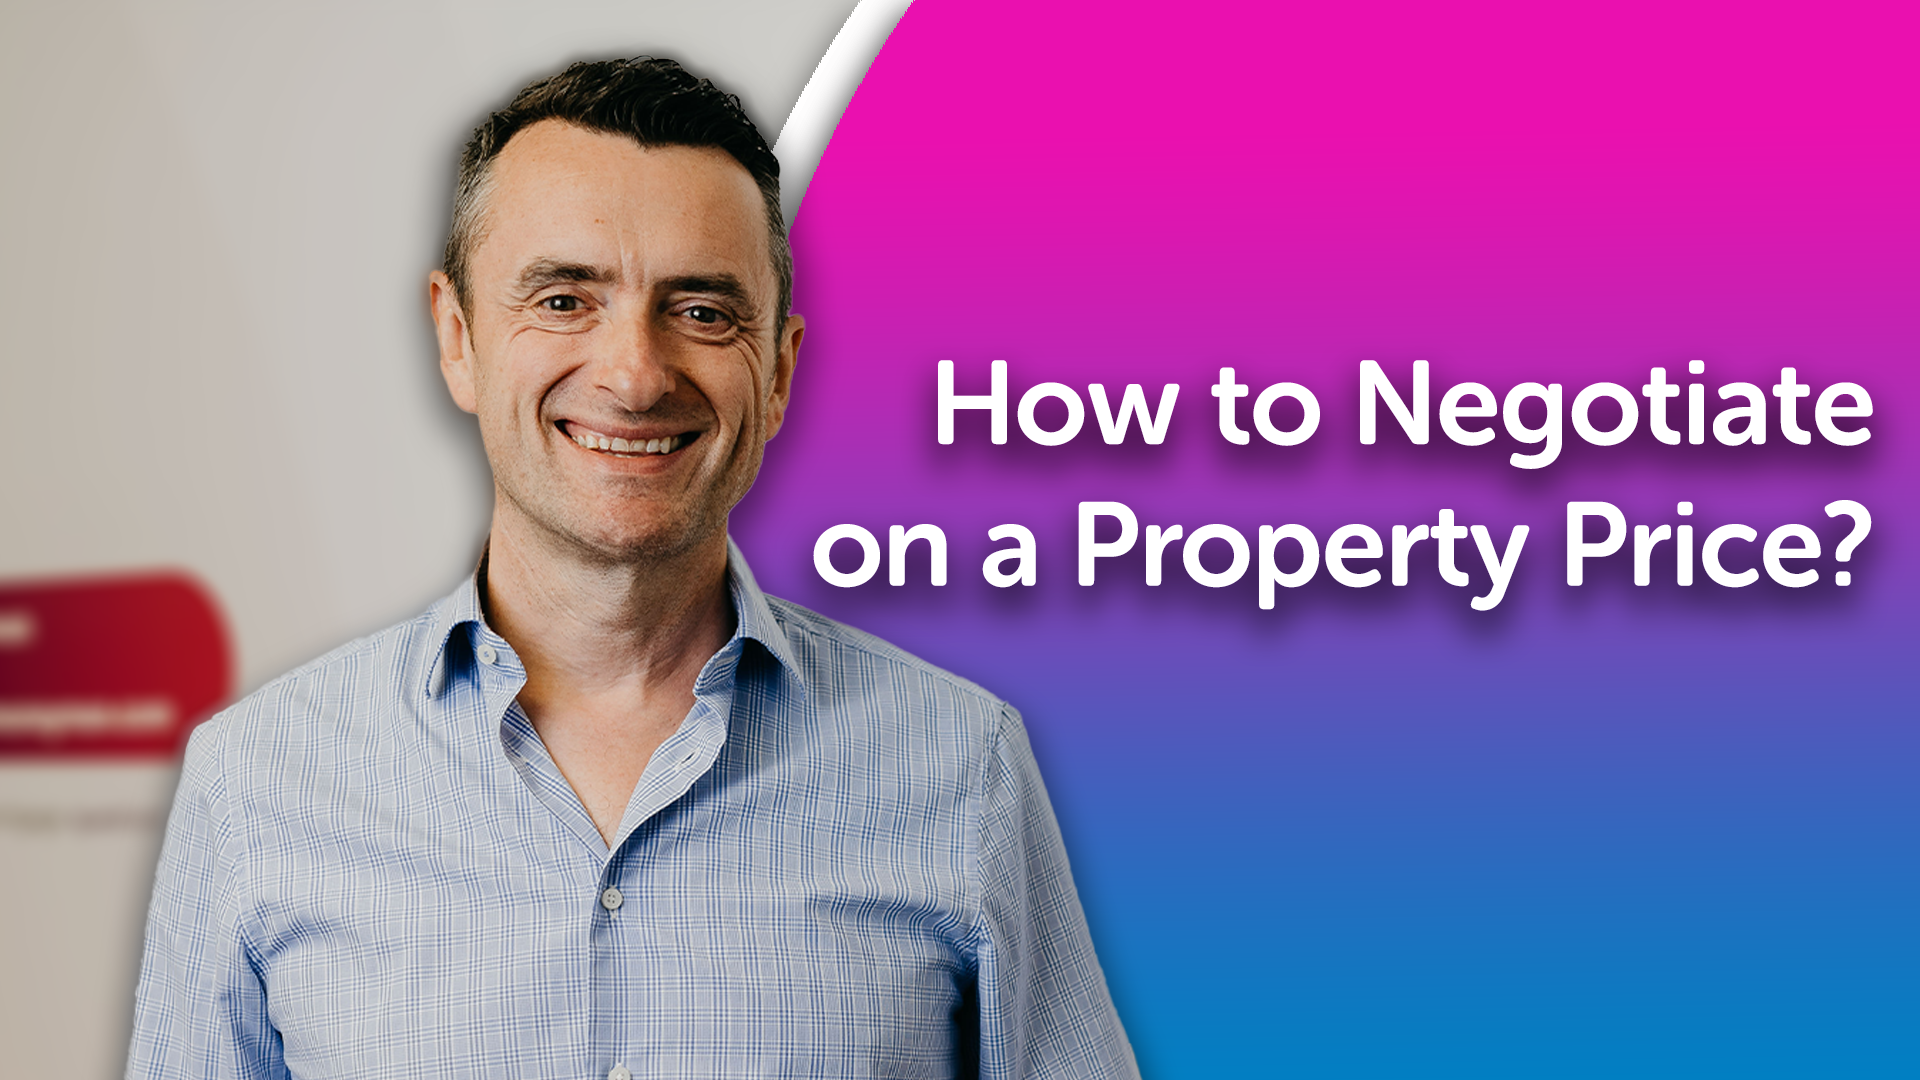 How to Negotiate on a Property Price